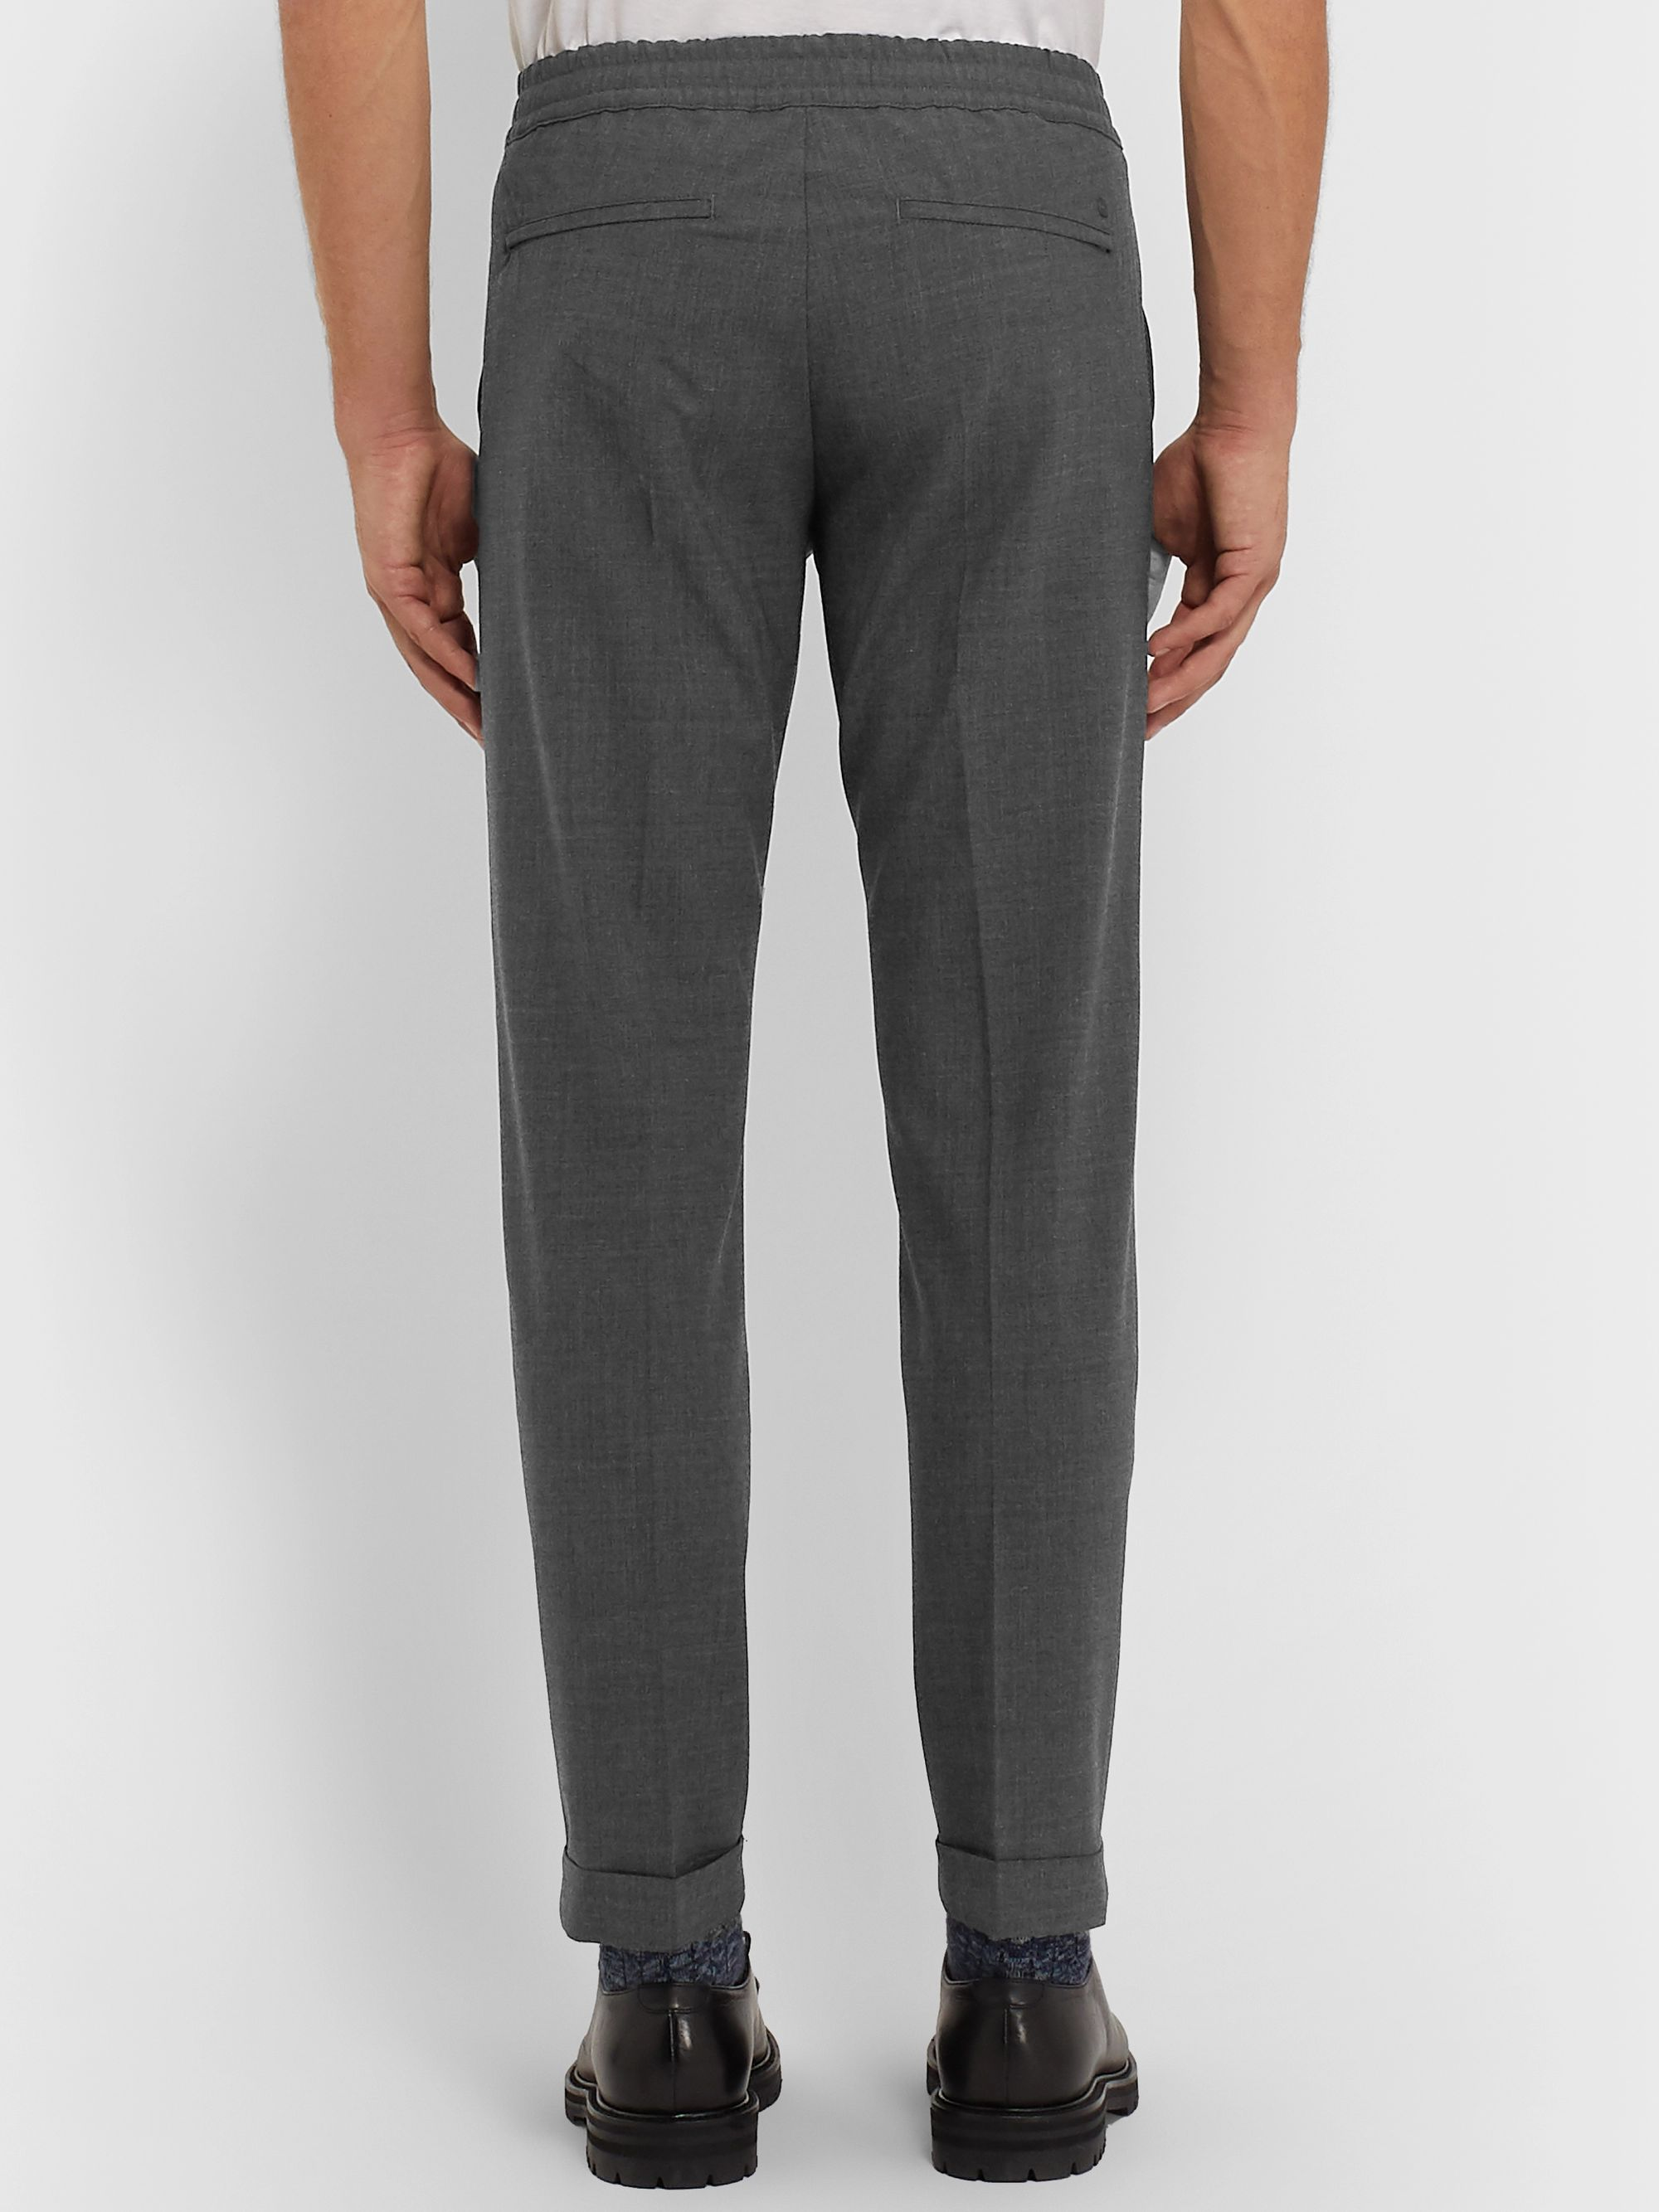 NN07 Slim-Fit Tapered Cropped Woven Drawstring Trousers